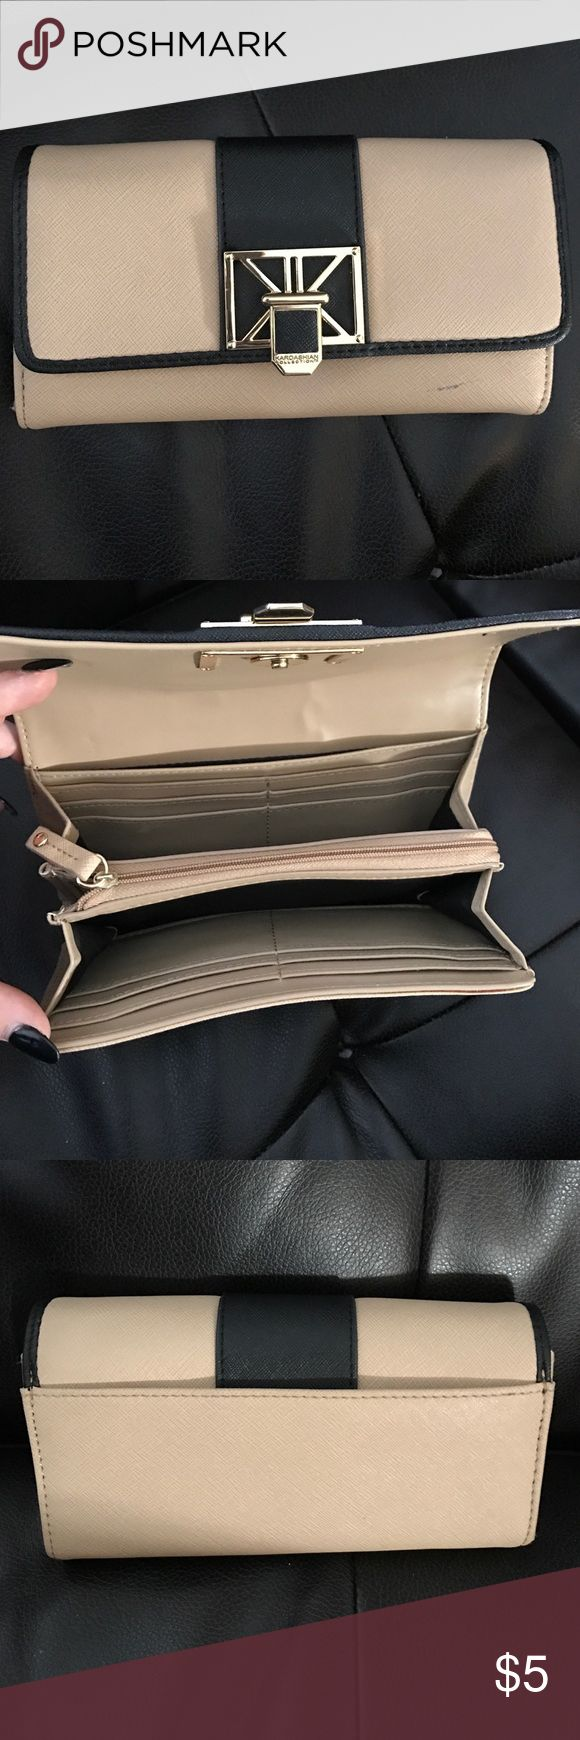 Kardashian Kollection wallet Stylish Kardashian Kollection wallet goes with a variety of colors. Tons of space for credit cards and a zip pocket that could be used for change. Bags Wallets